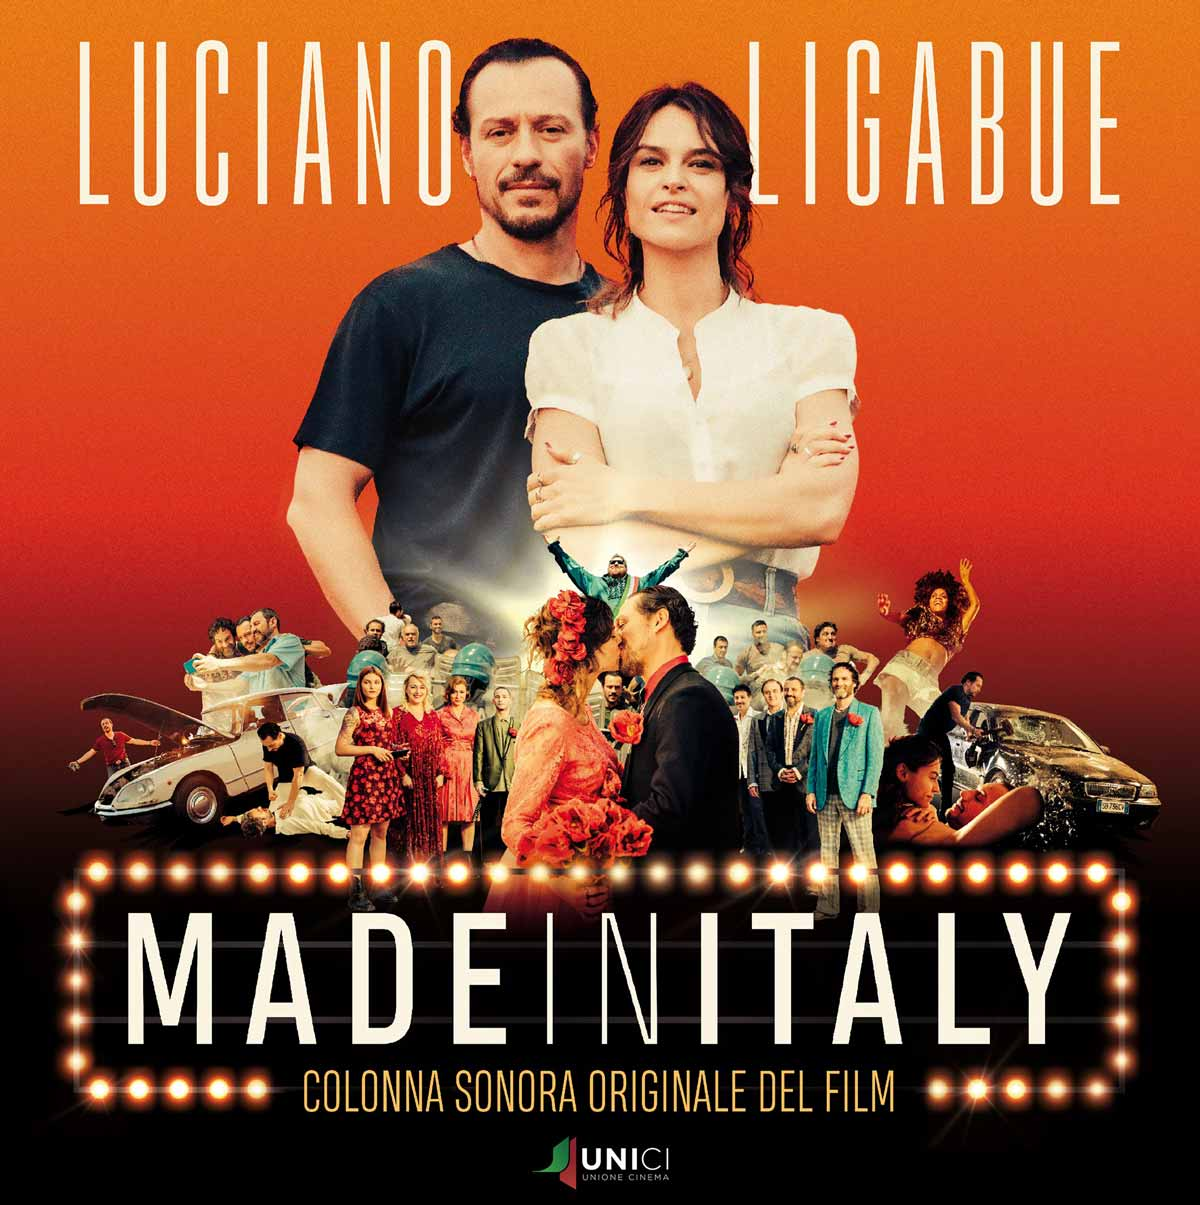 made in italy colonna sonora